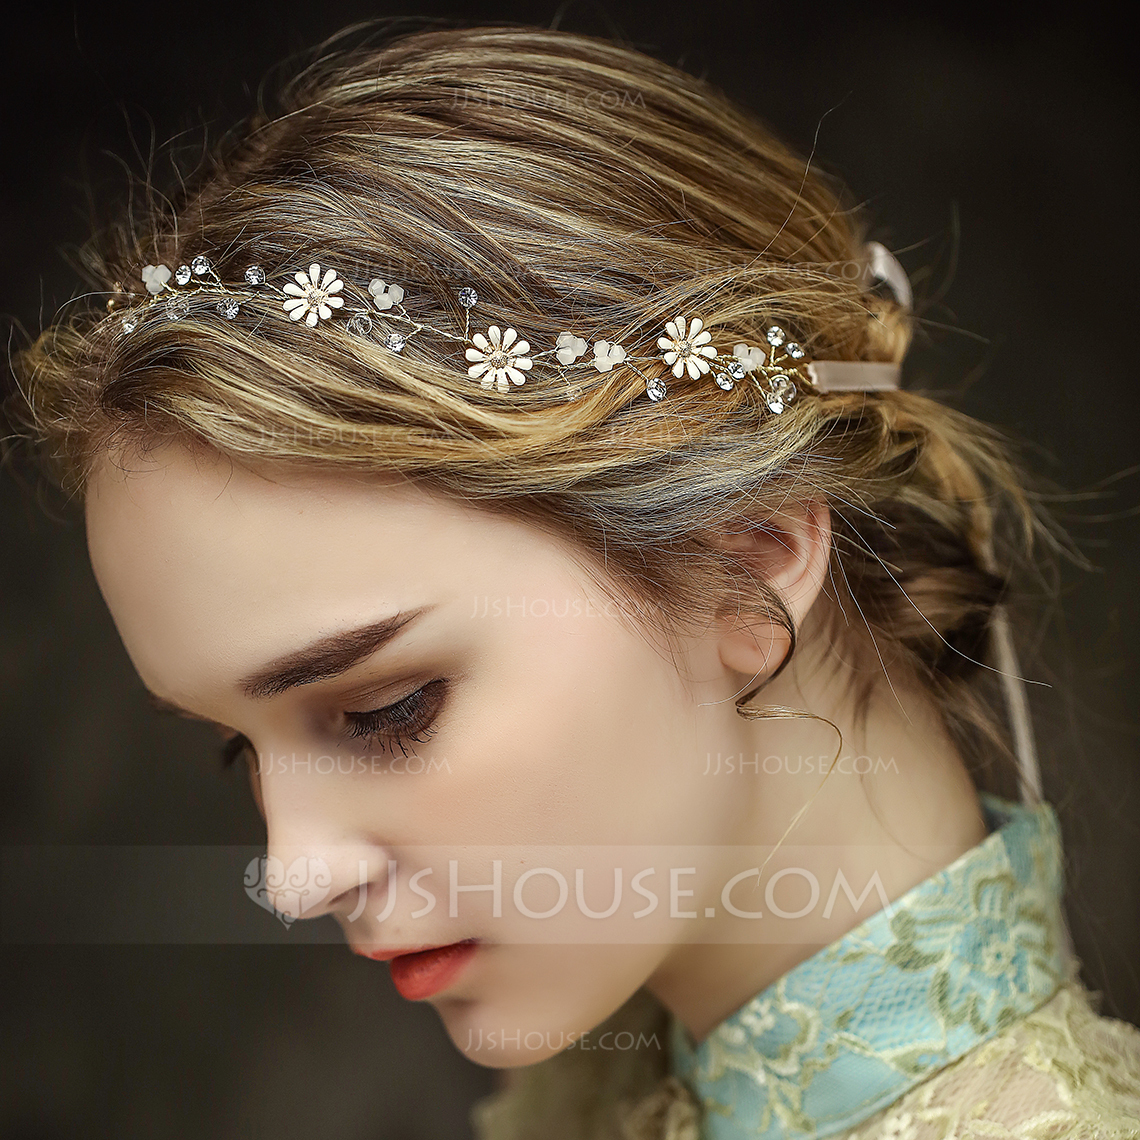 Fashion CrystalRhinestone Headbands 042088105